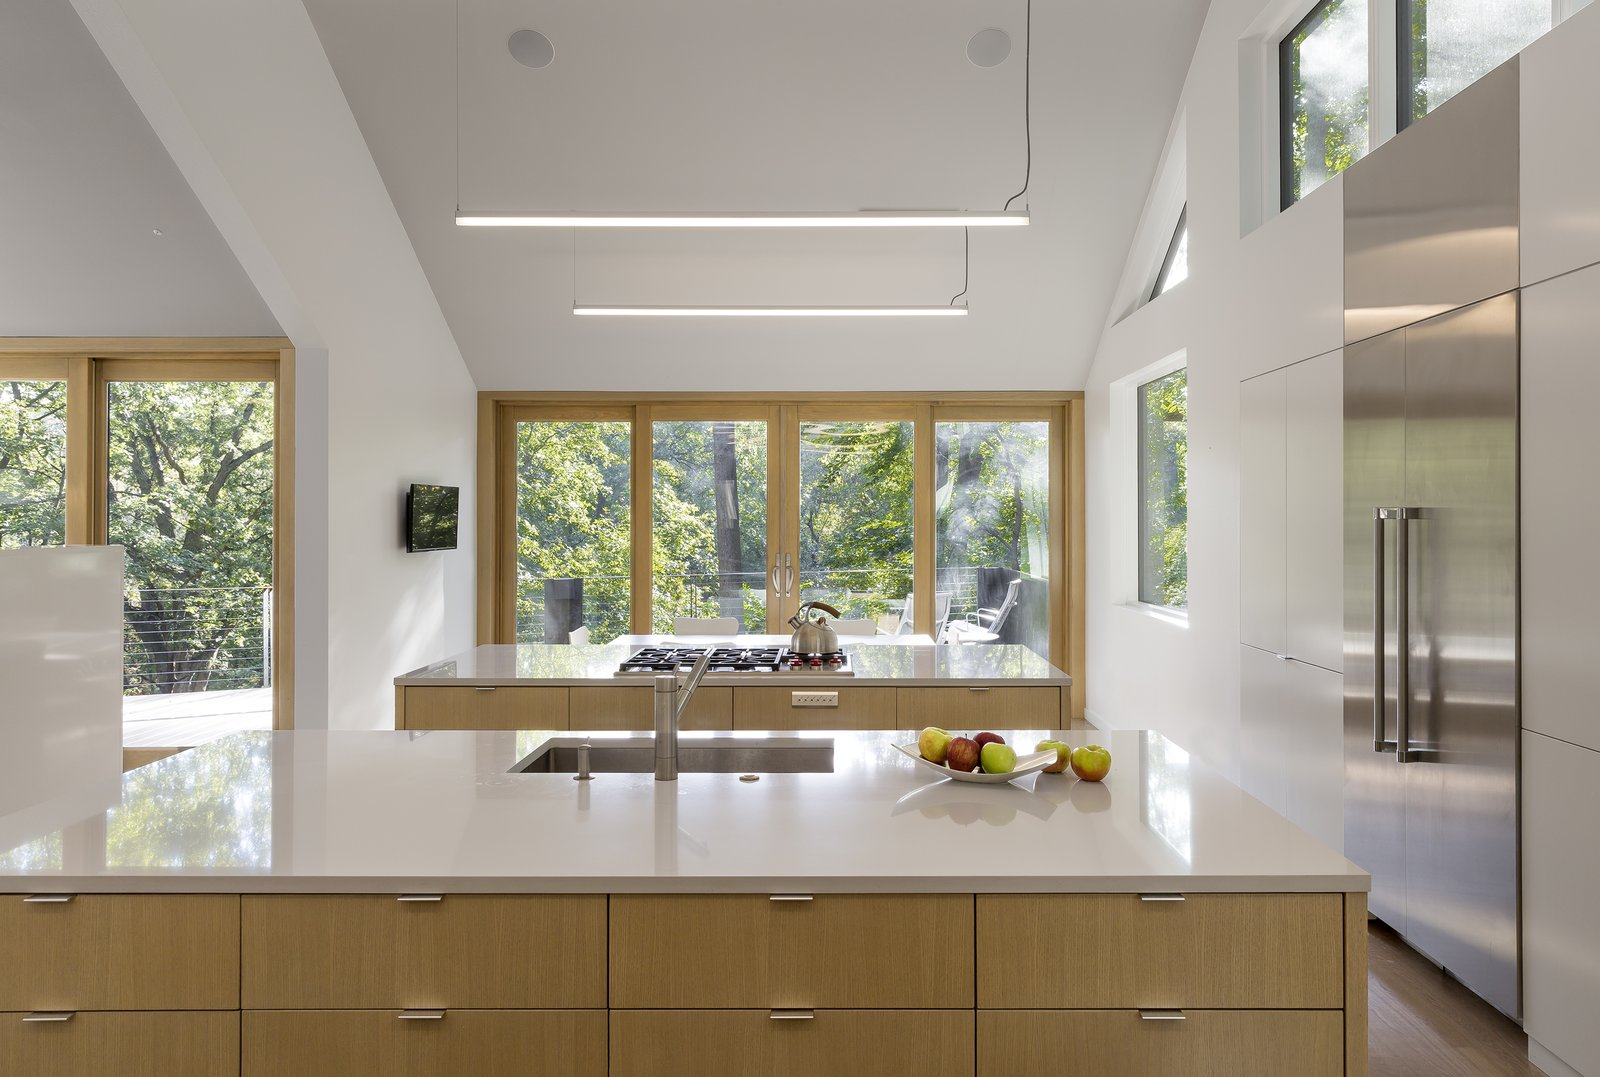 Kitchen, Wood Cabinet, and White Cabinet  3LP Residence by Substance Architecture